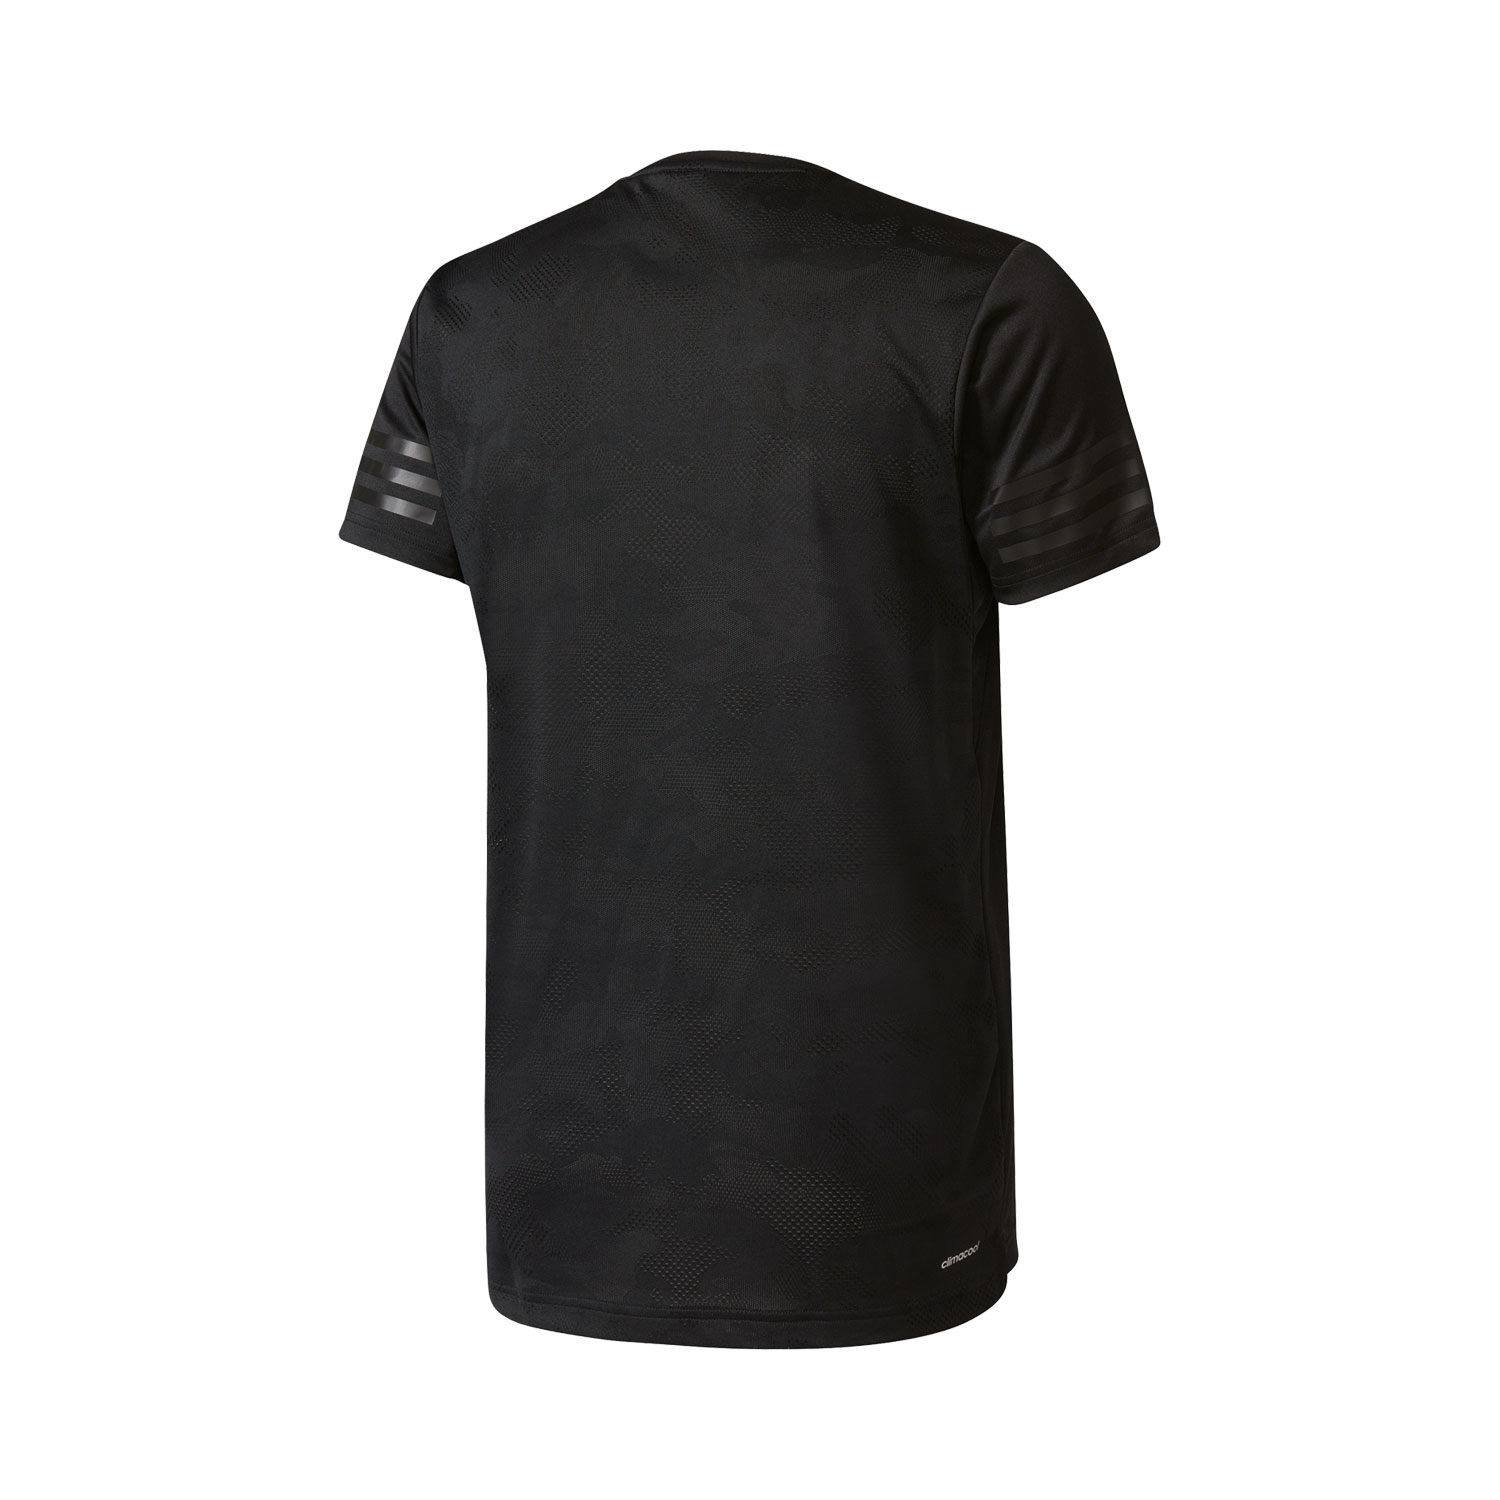 Adidas FreeLift Climacool Herren Trainingsshirt – Bild 2